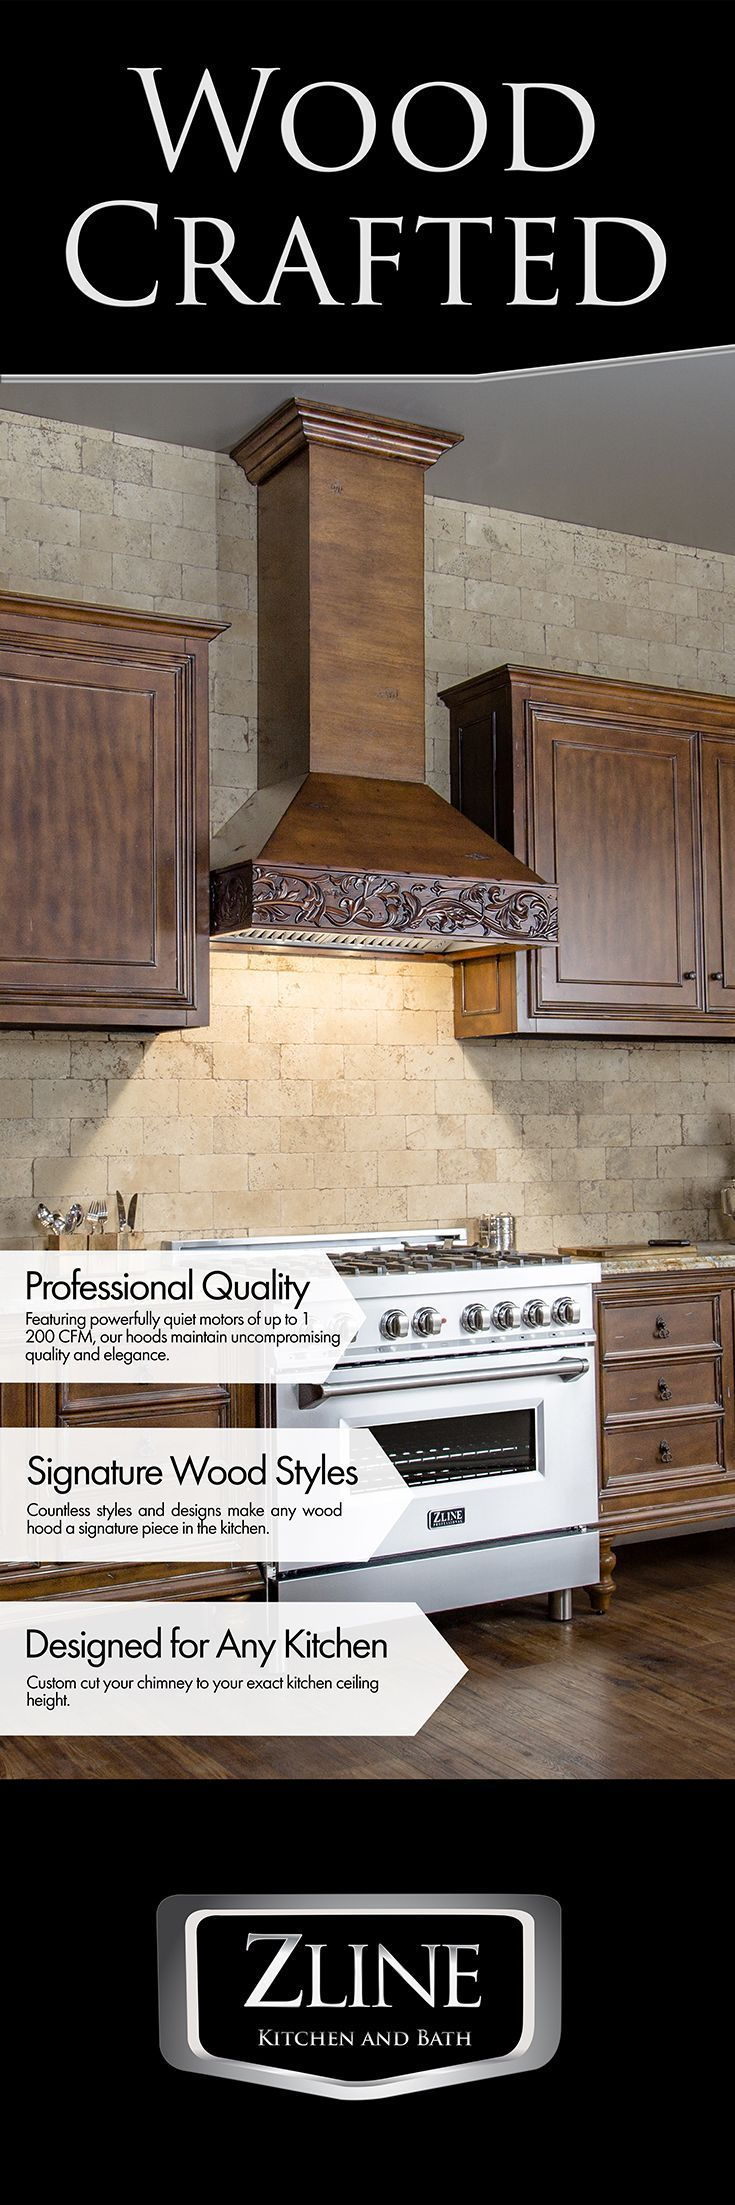 The Designer Series Wooden Range Hood Handcrafted Detail And High Performance Combine To Provide You Wit Wooden Range Hood Kitchen Exhaust Kitchen Vent Hood